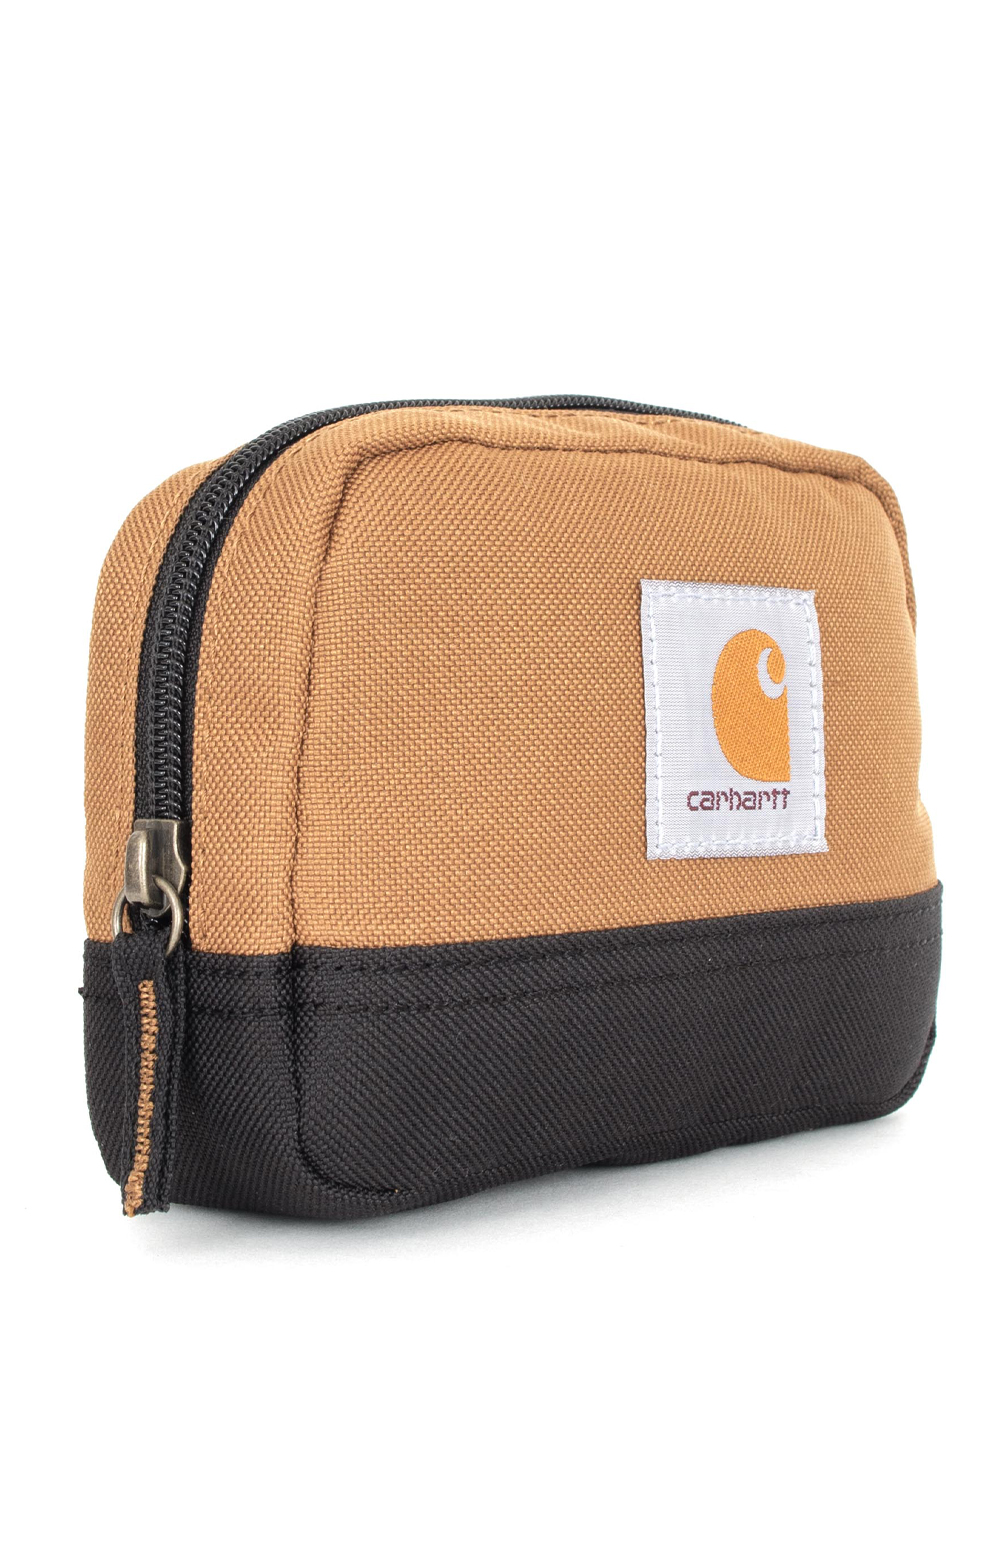 Necessities Pouch - Carhartt Brown 2